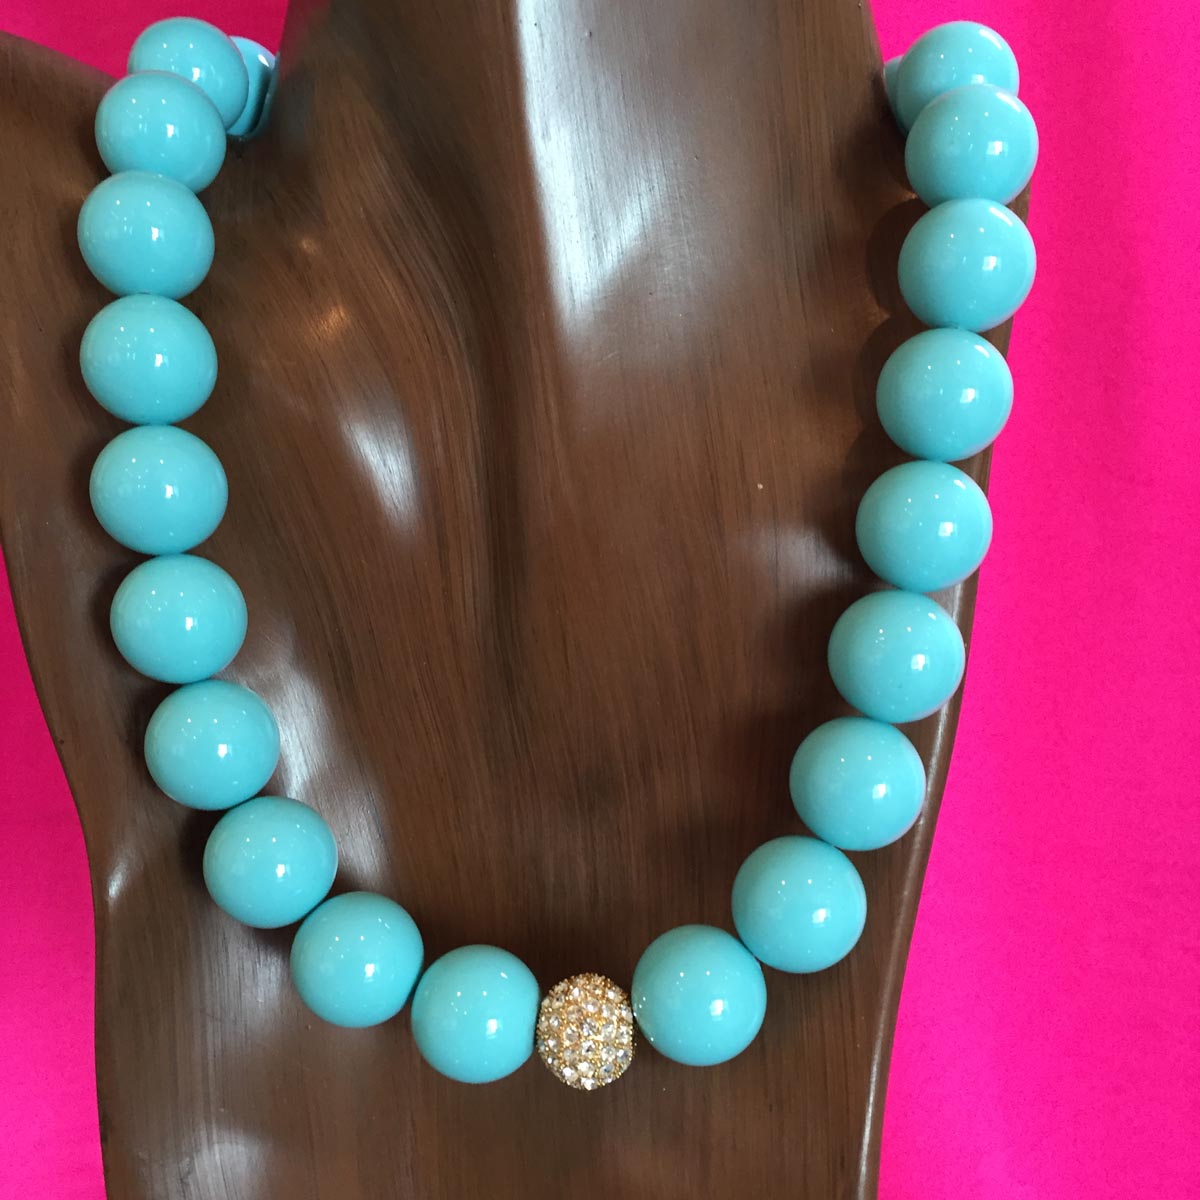 5869 Turquoise Shell Pearl 18 mm Necklace with Rhinestone Clasp 21 inches $1400.jpg